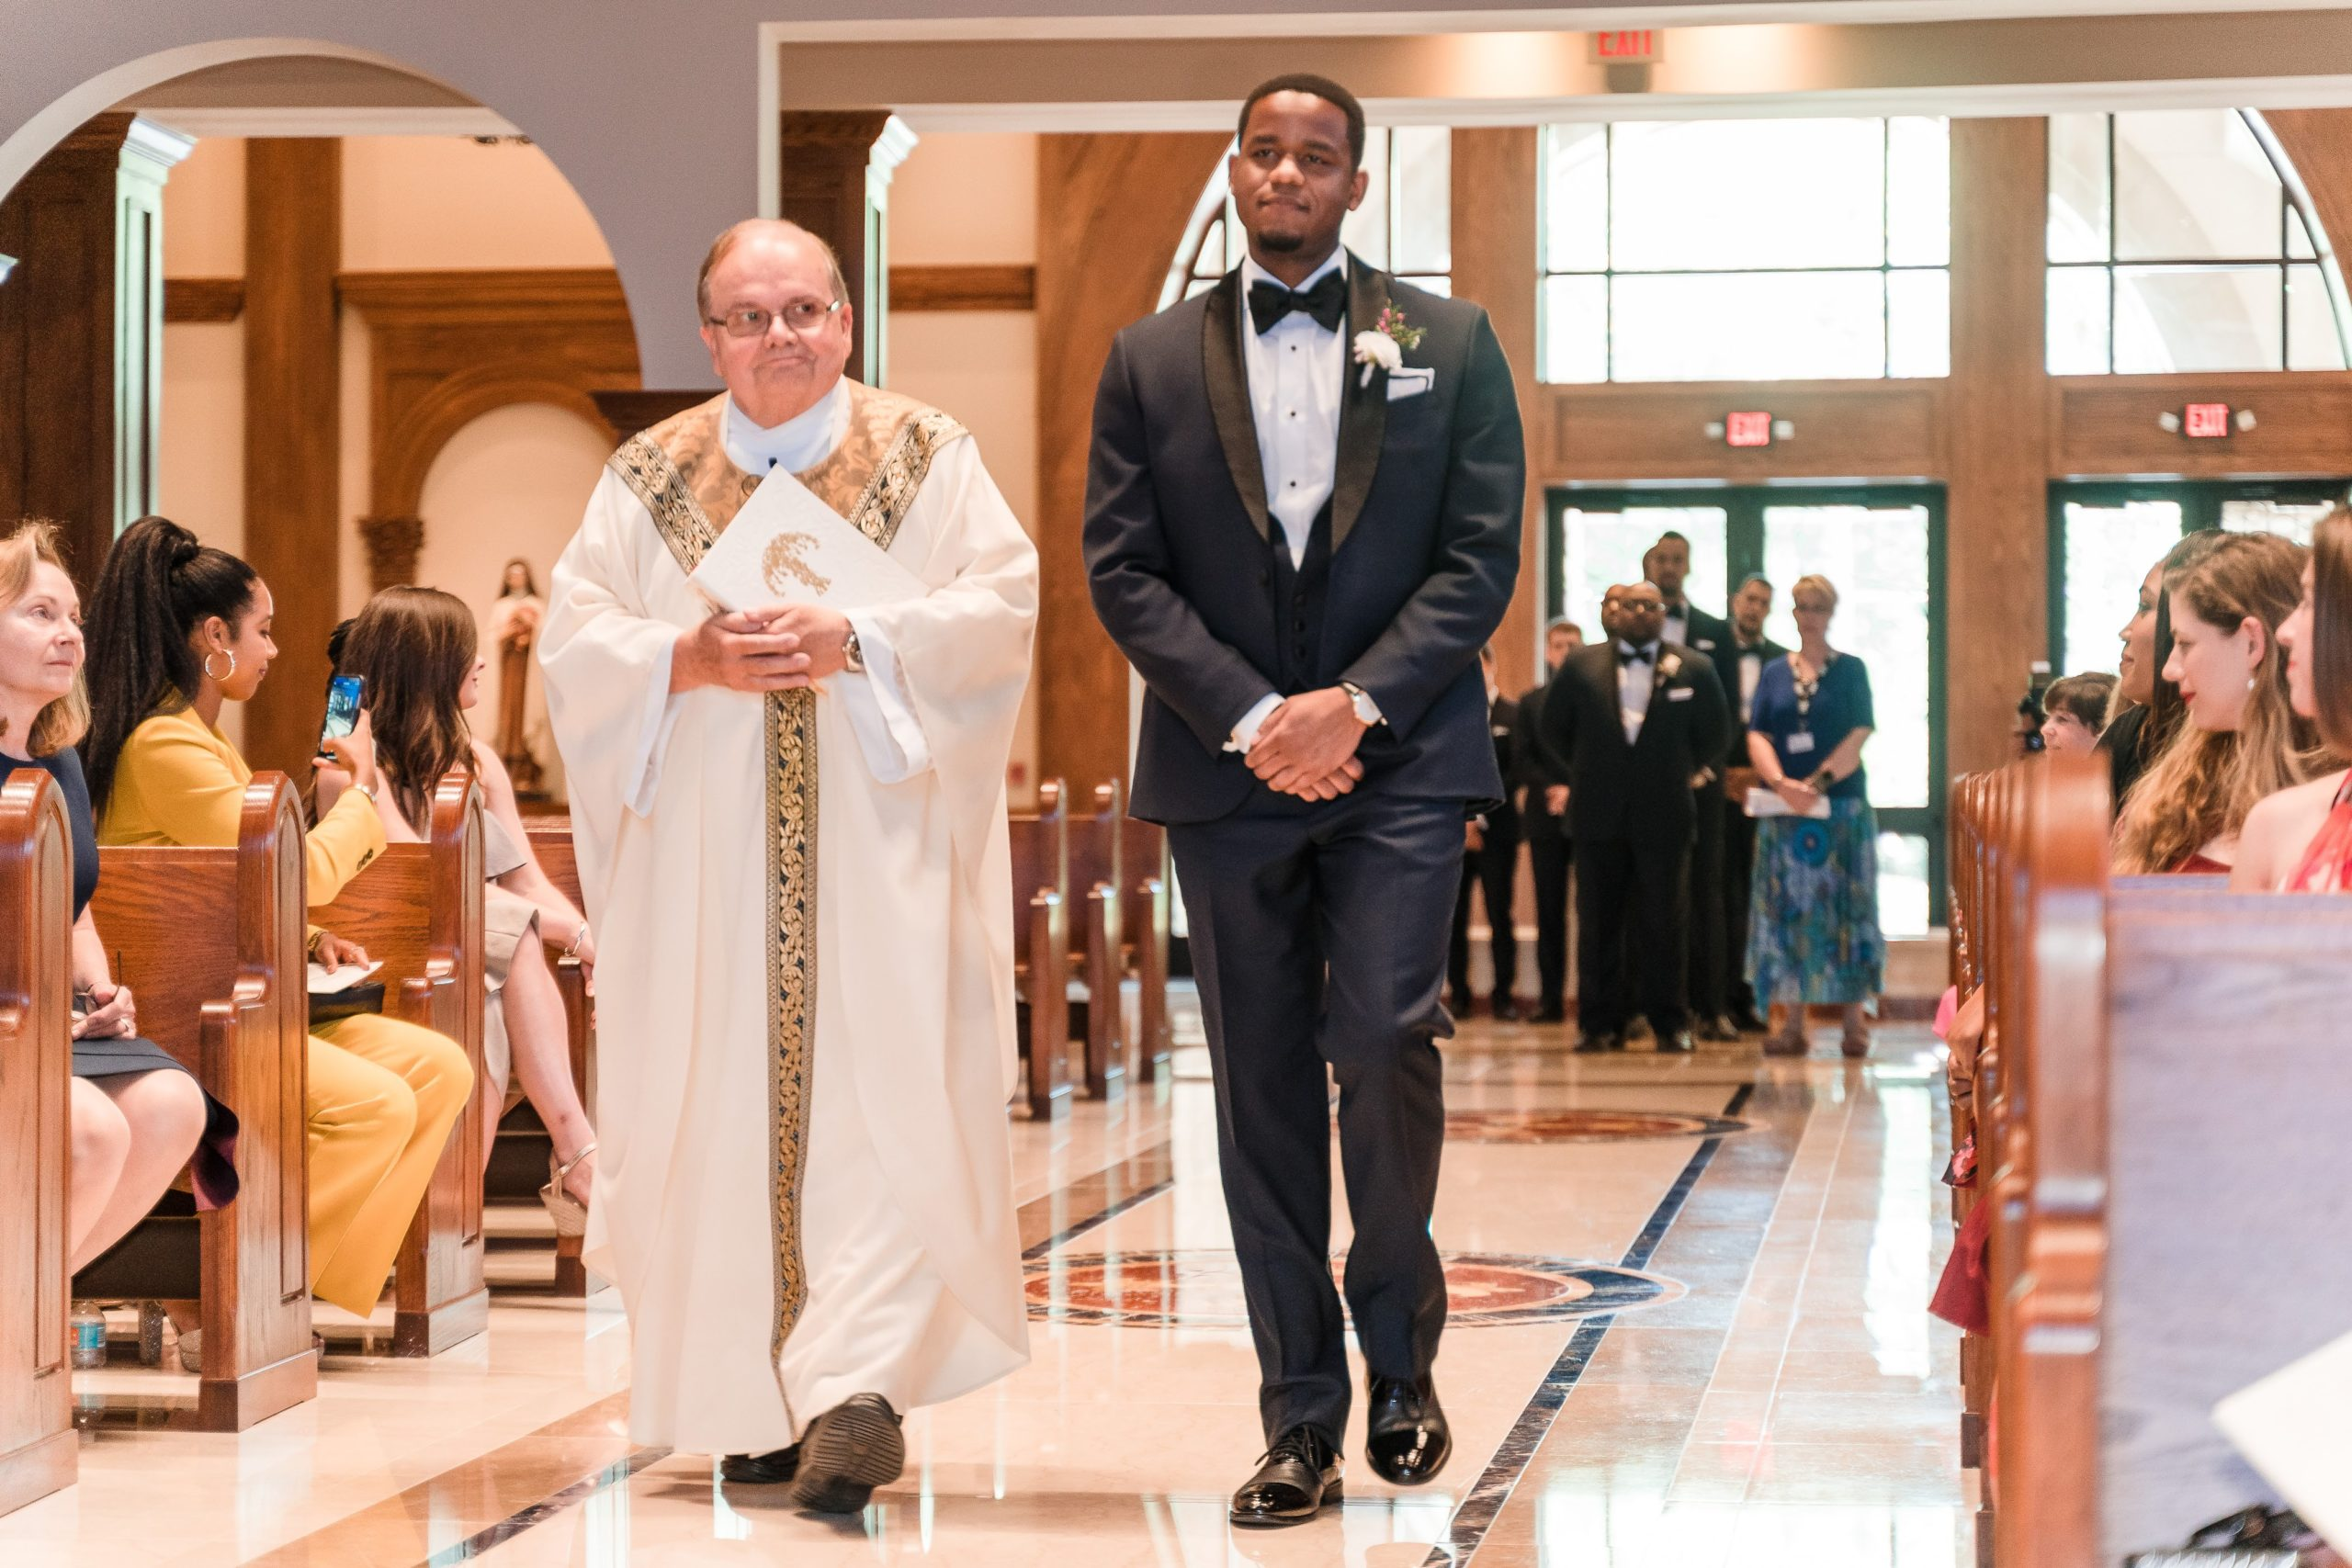 groom walking with priest